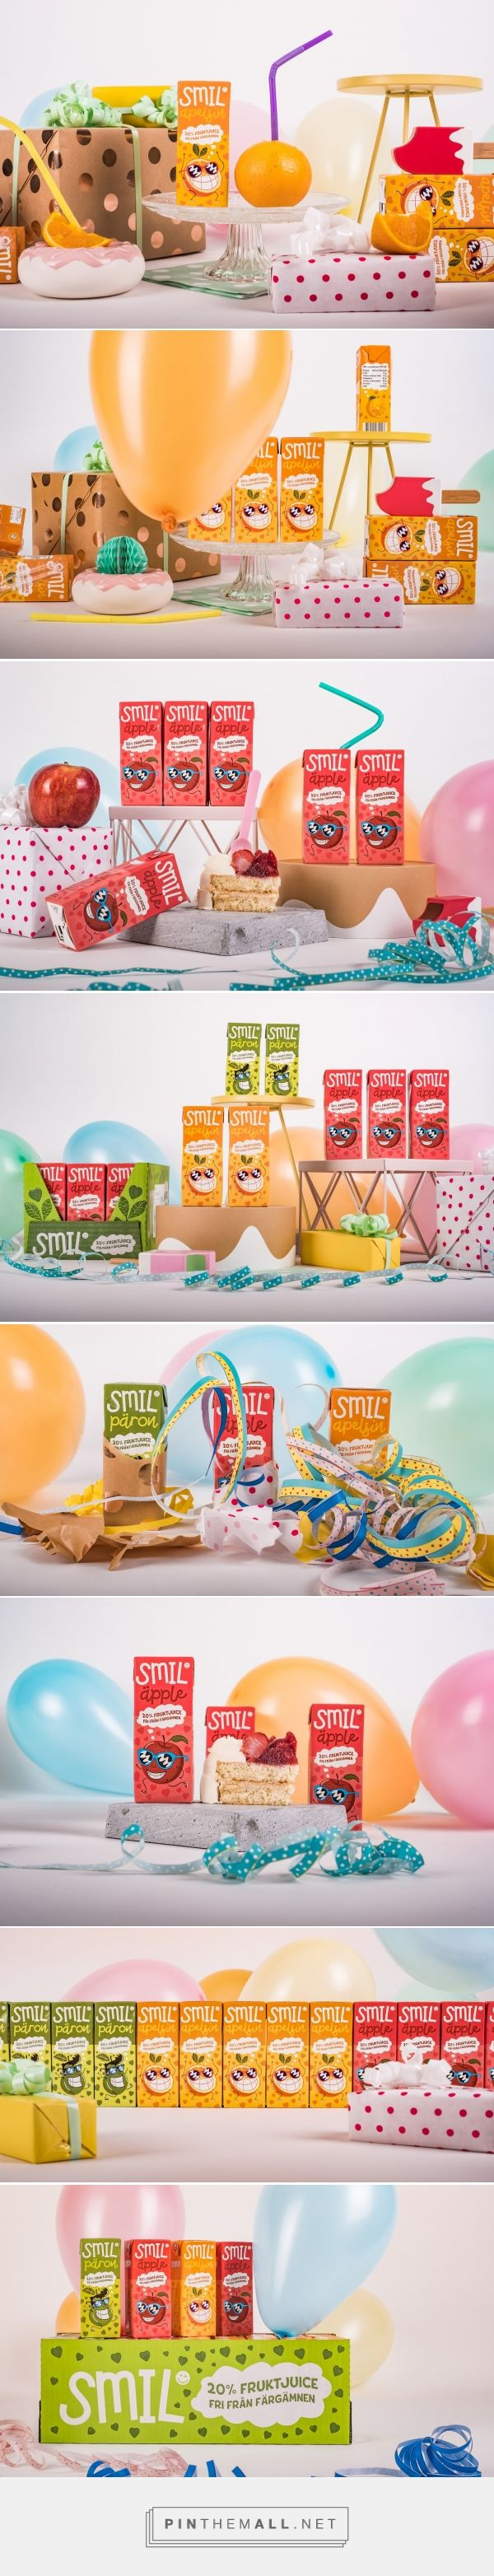 Smil - Packaging of the World - Creative Package Design Gallery - http://www.packagingoftheworld.com/2017/05/smil.html